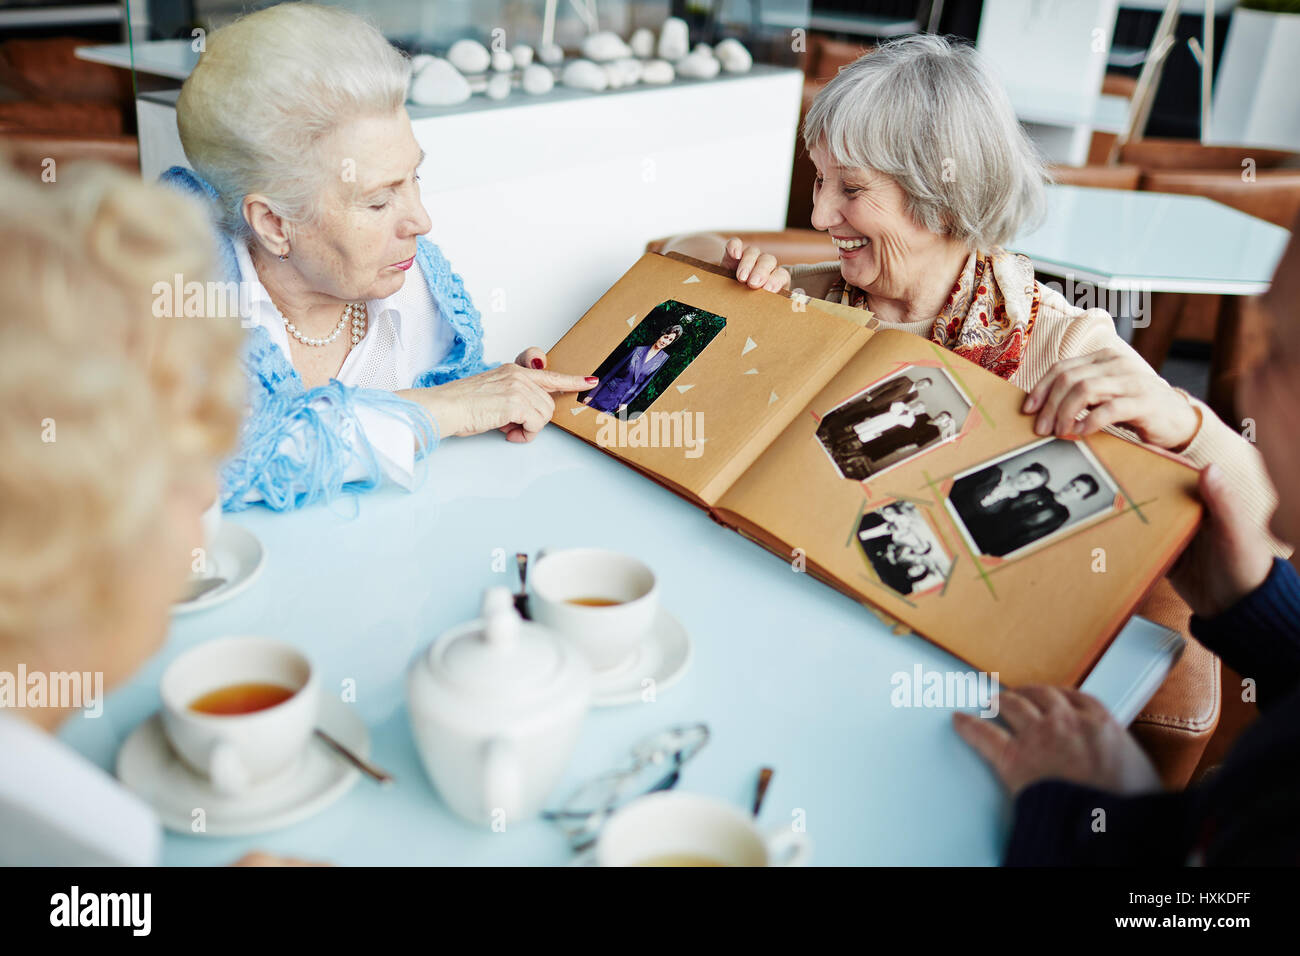 Seniors relaxing in cafe - Stock Image